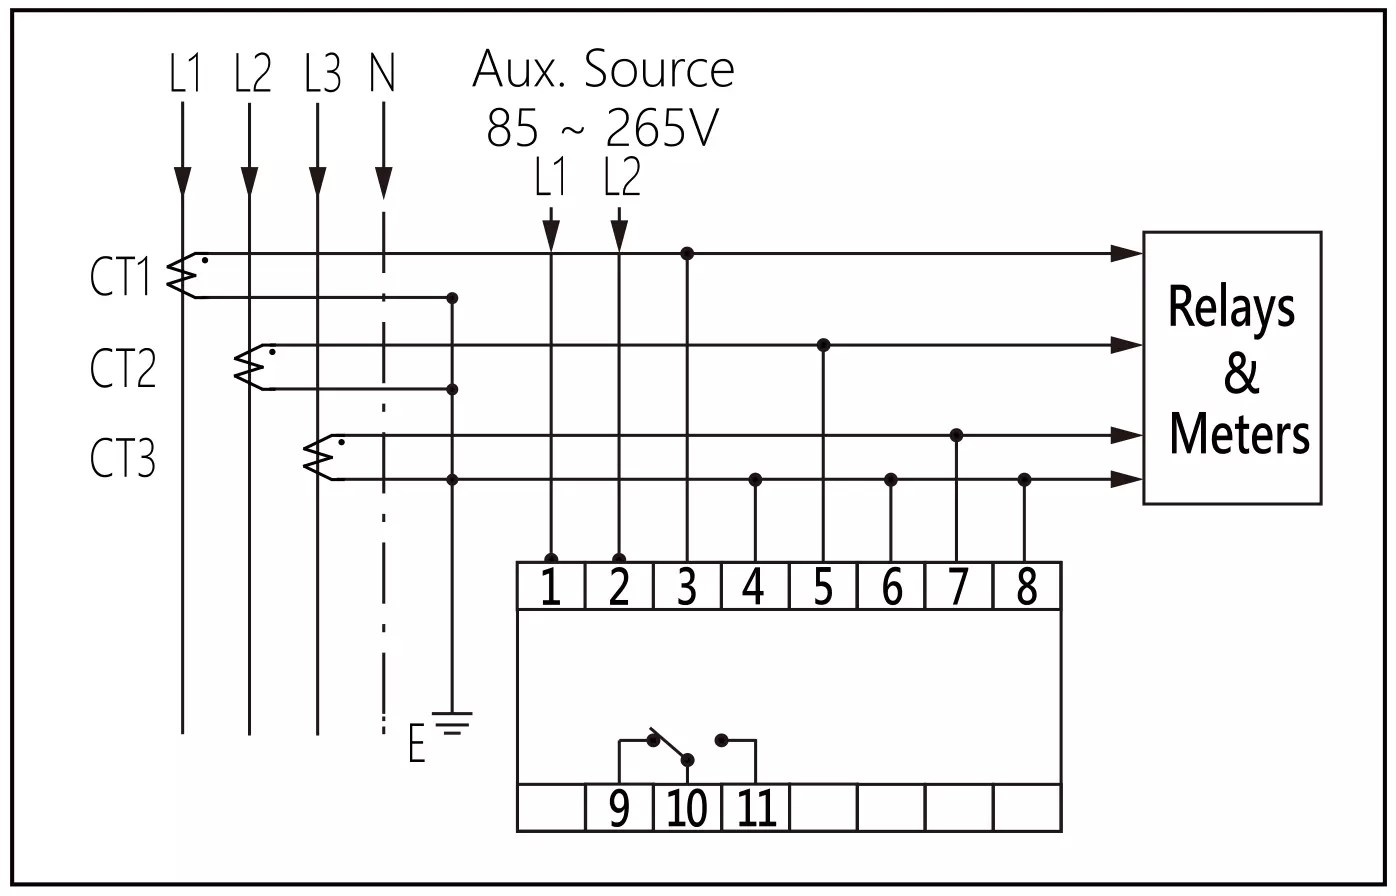 overvoltage protector for current transformer protection wiring diagram  [ 1920 x 1223 Pixel ]